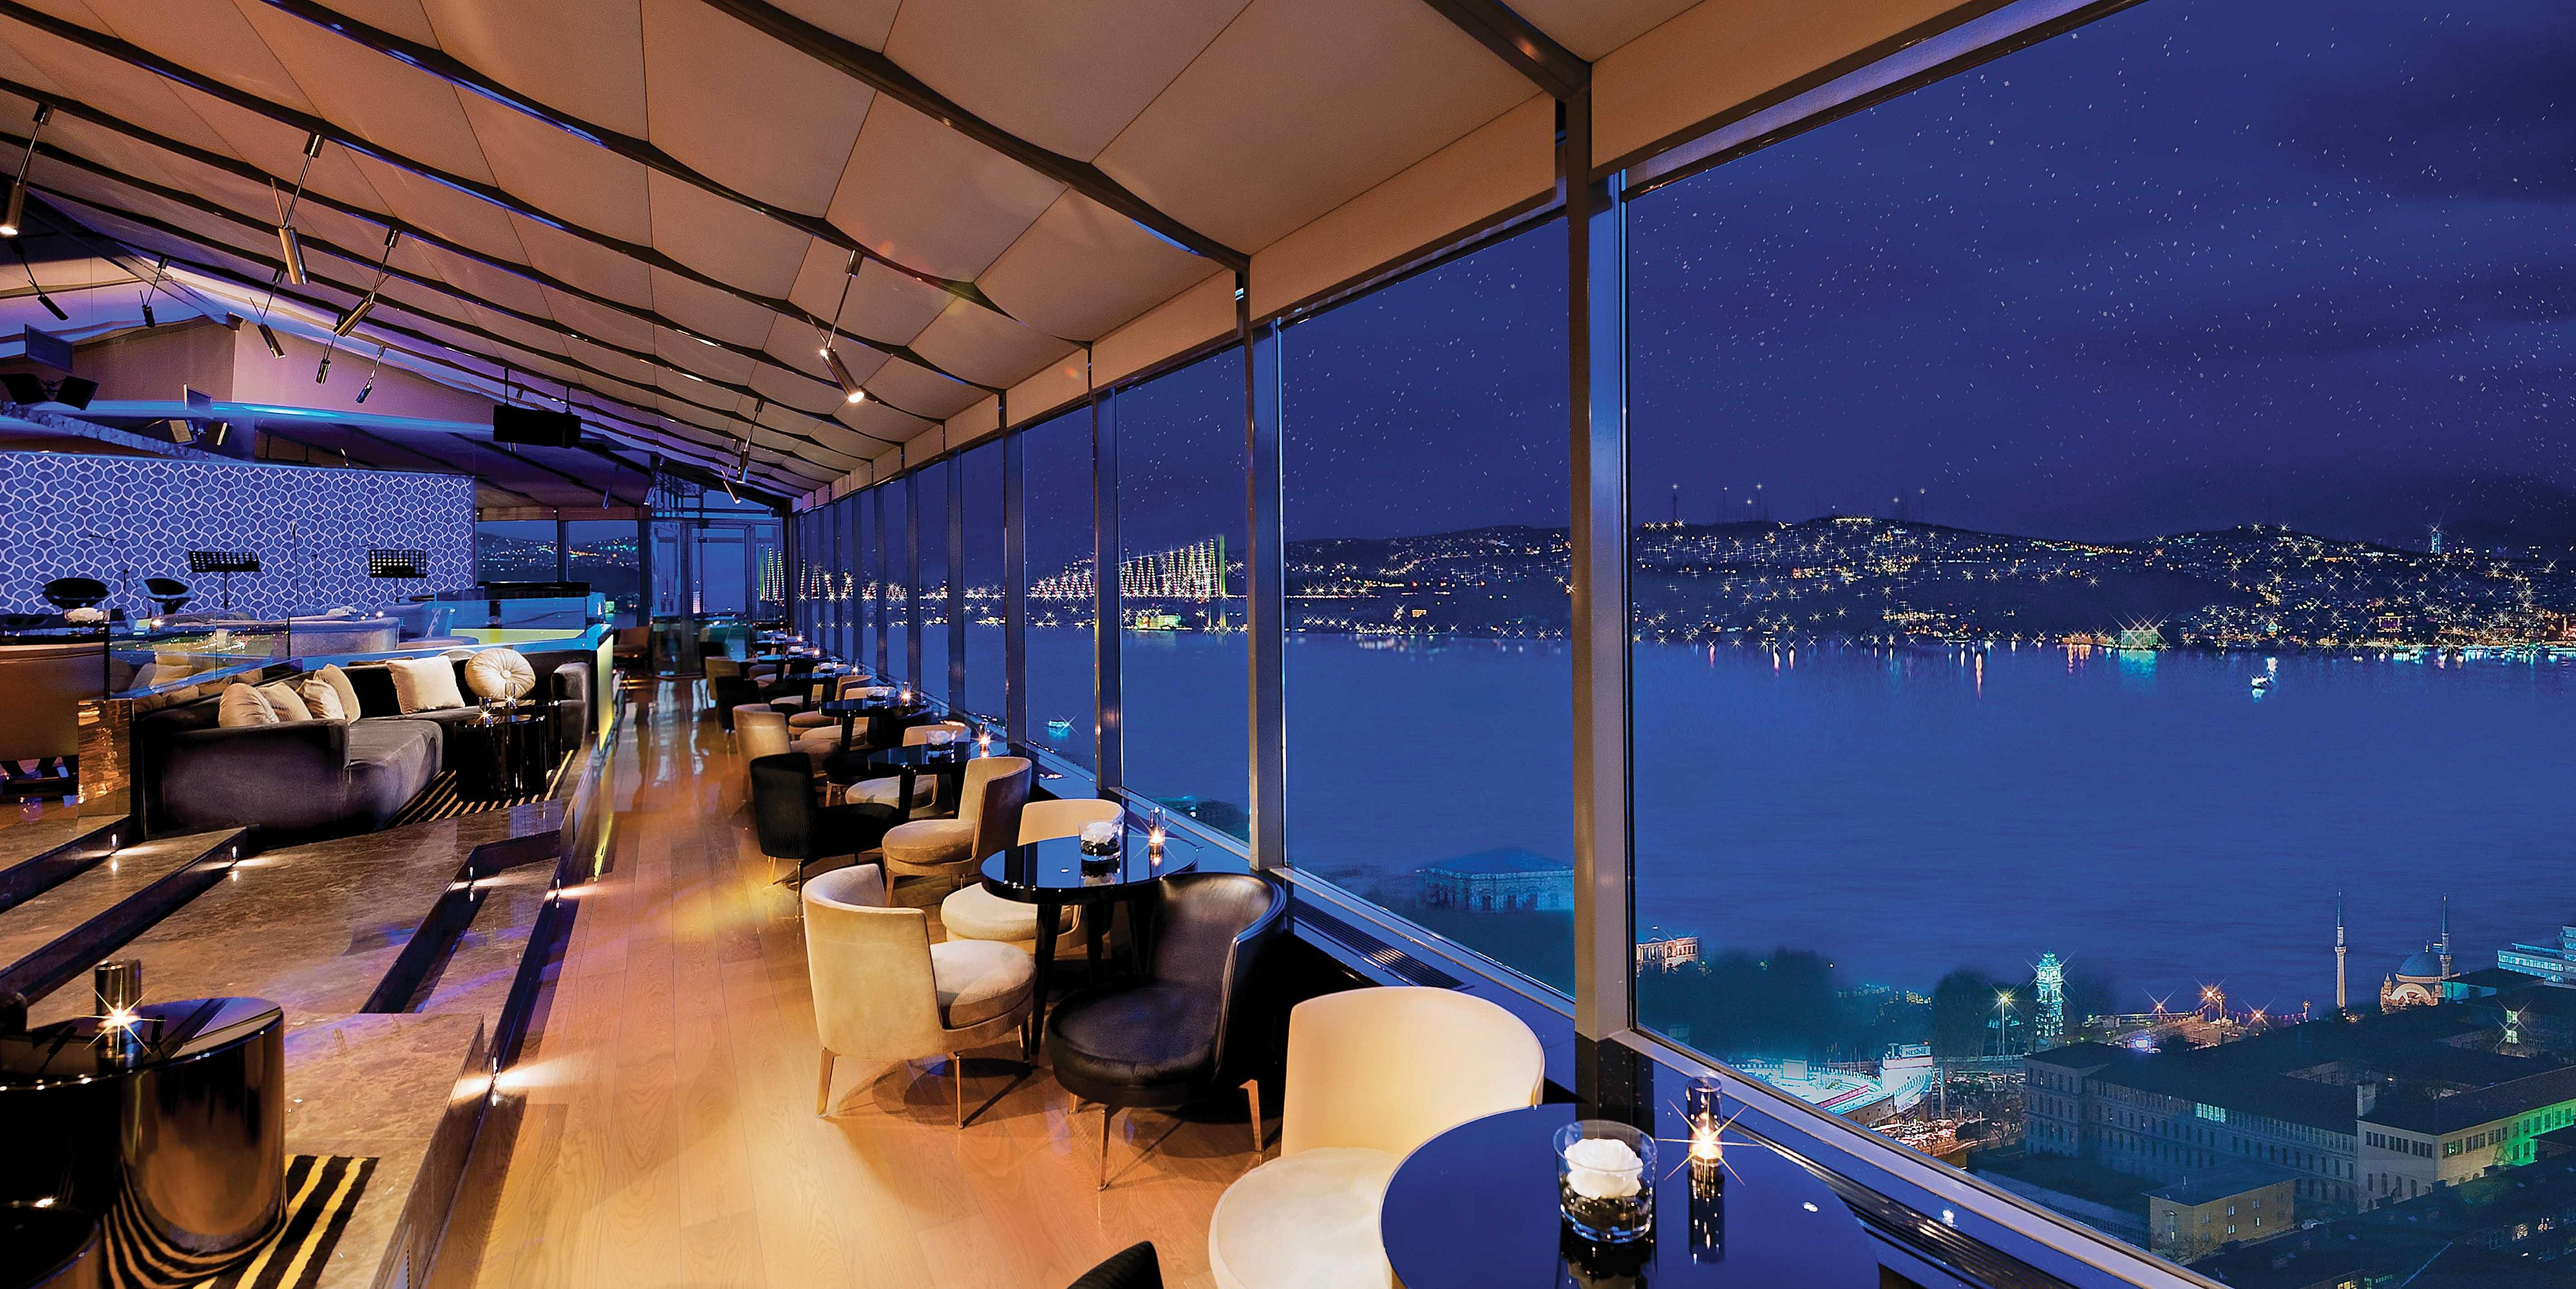 Luxury Hotel With Pool: InterContinental Hotel Istanbul